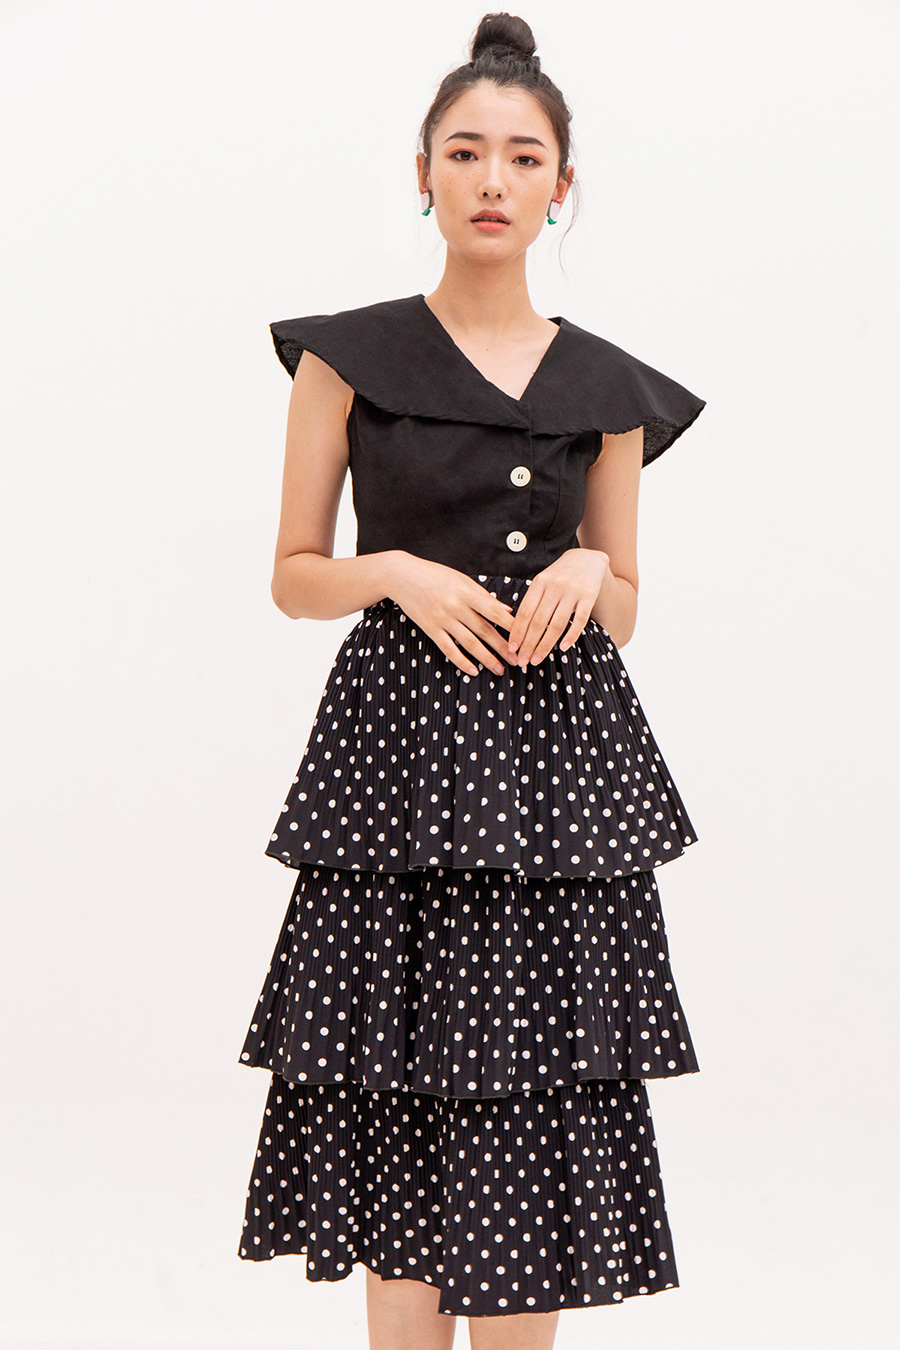 EVELYN SKIRT - NOIR DOTTY